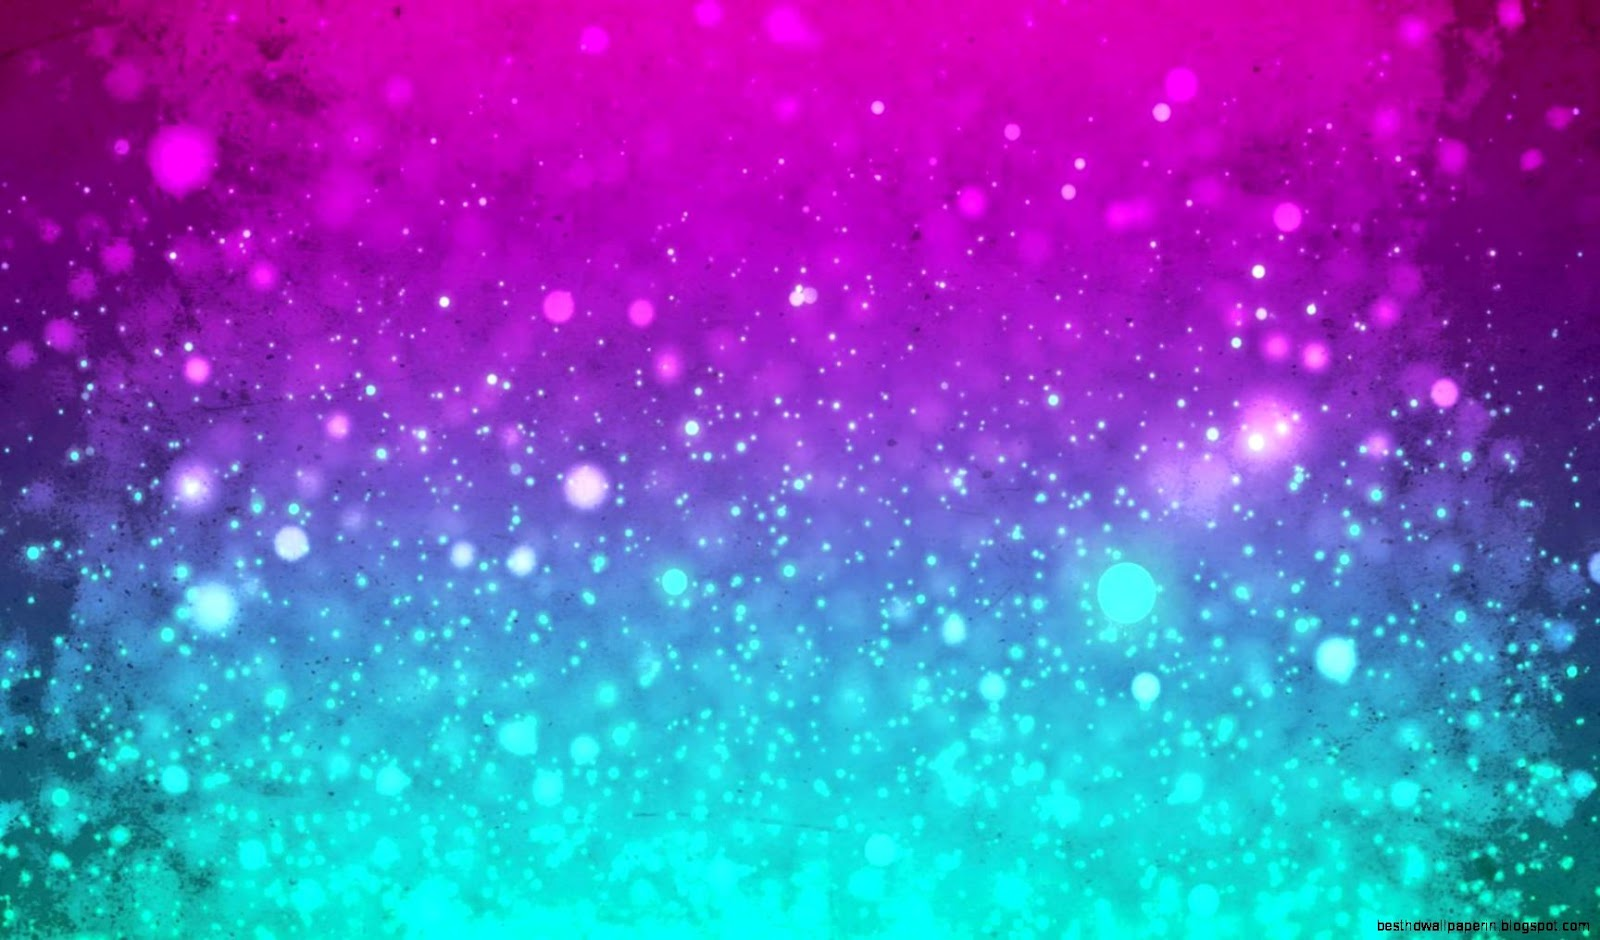 Cool And Cute Backgrounds: Cute And Cool Backgrounds